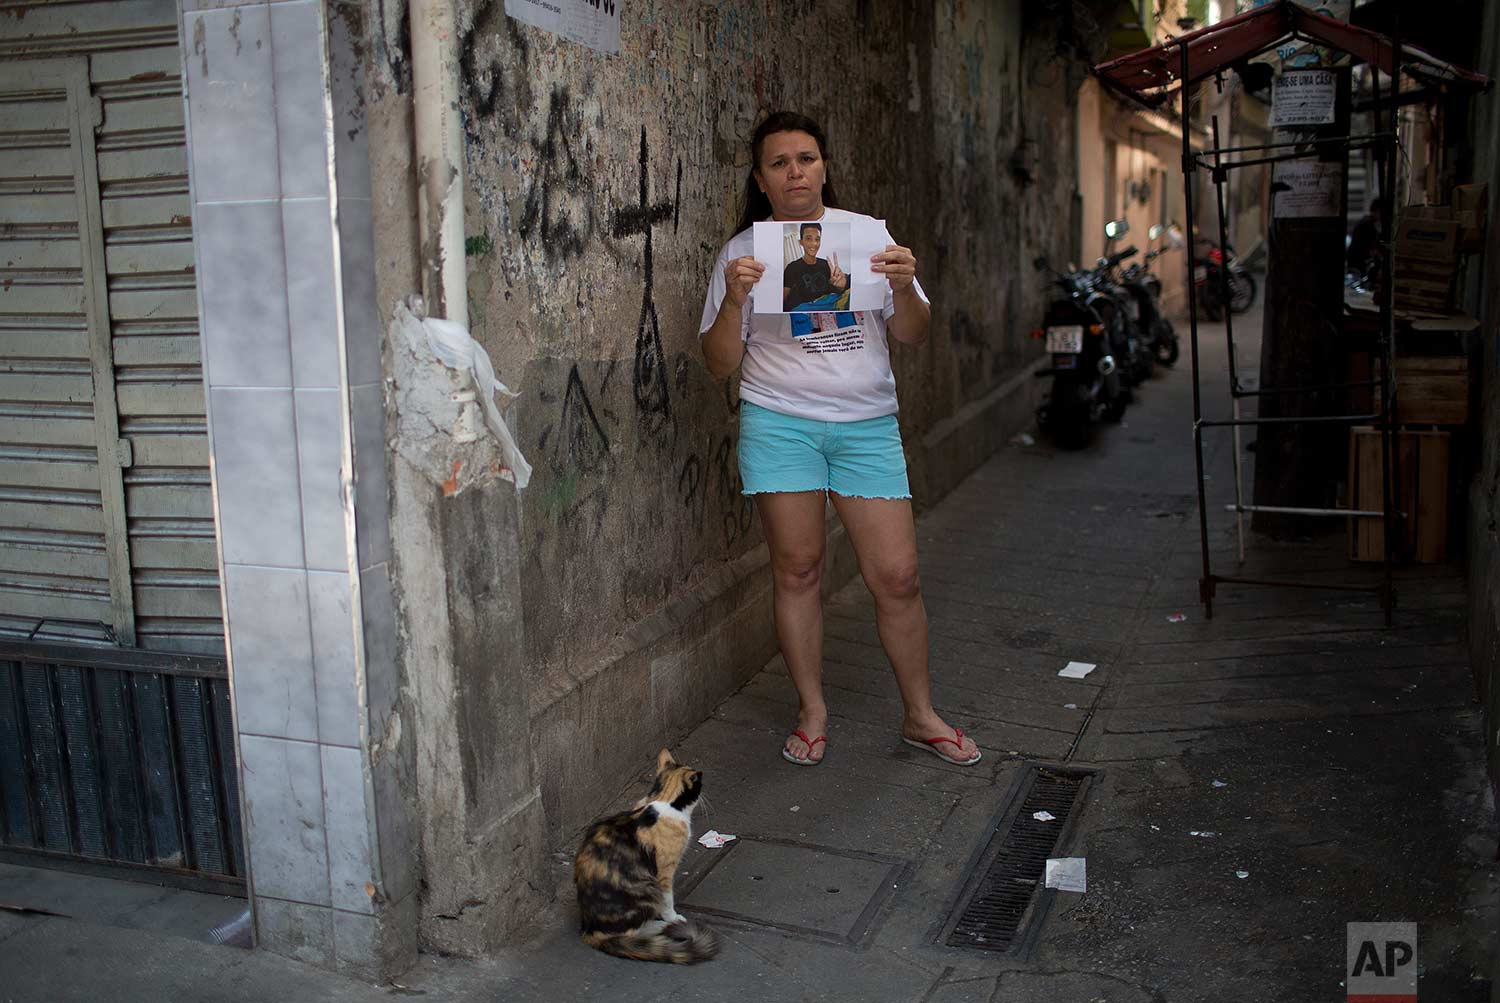 In this Aug. 13, 2017 photo, Tereza Farias poses with a photo of her 16-year-old son Felipe, on the exact spot where her son was also killed by gunfire not meant for him, in the Alemao complex of slums, in Rio de Janeiro, Brazil. Every night before going to bed, Farias looks at cellphone pictures taken by bystanders who witnessed her son's slender body lying in his own blood. (AP Photo/Silvia Izquierdo)